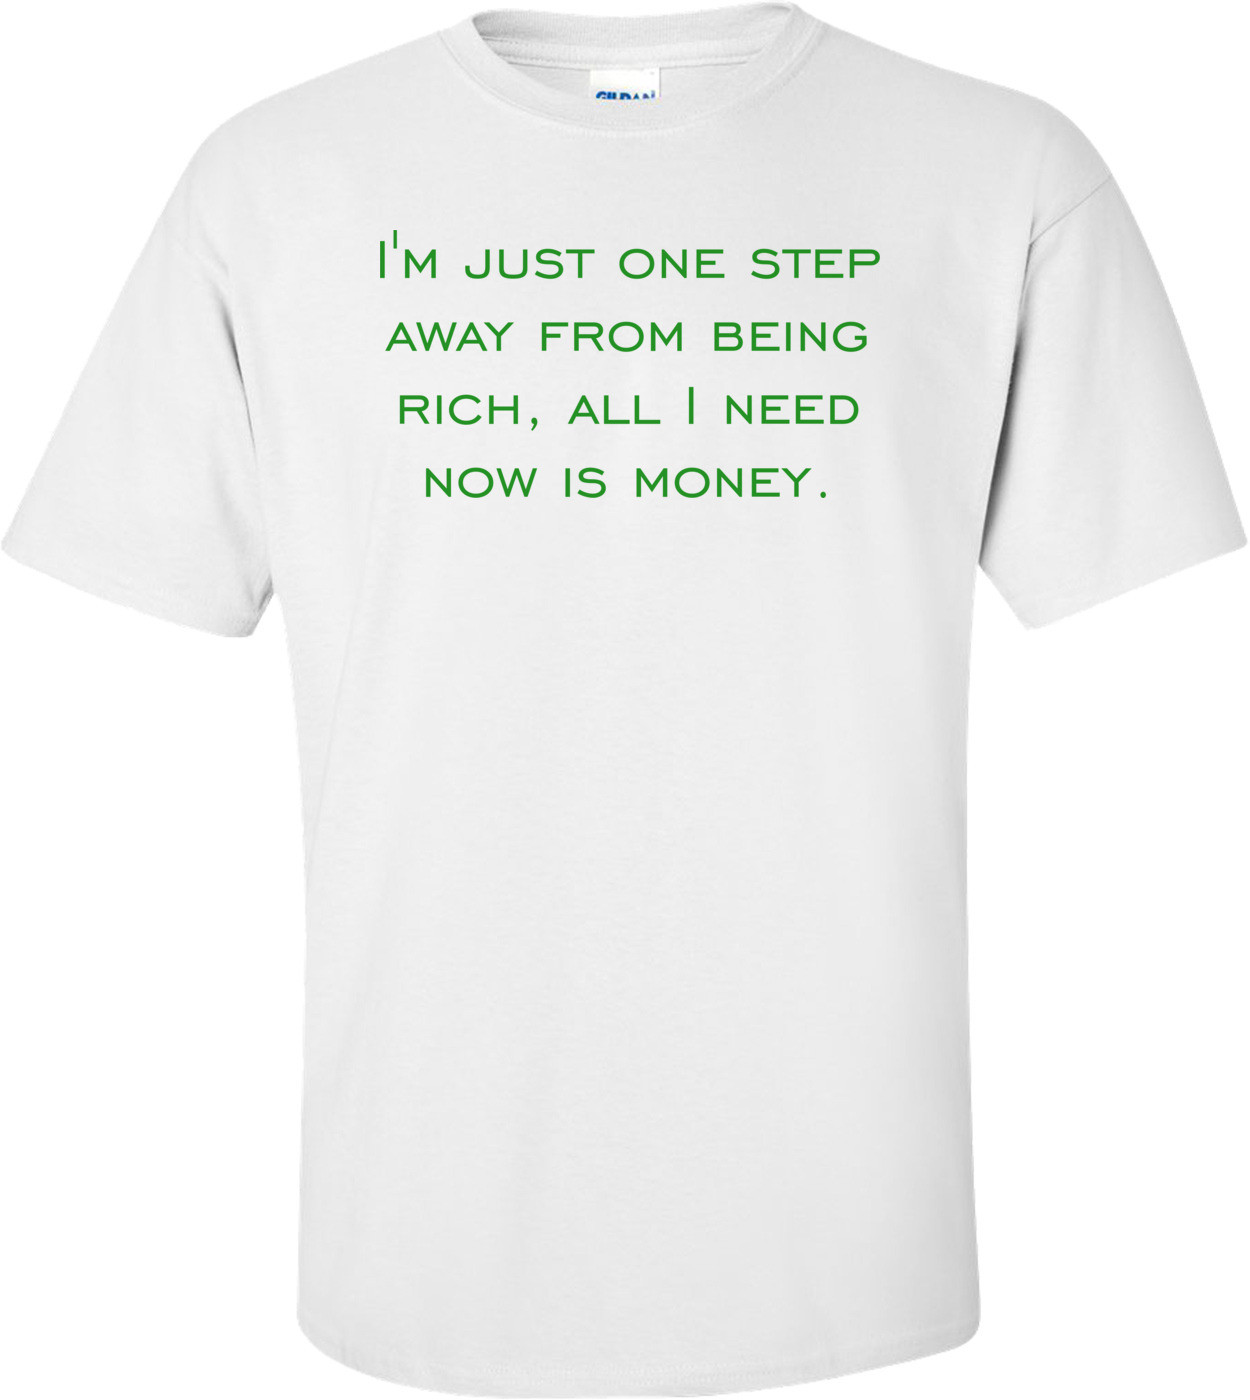 I'm just one step away from being rich, all I need now is money. Shirt